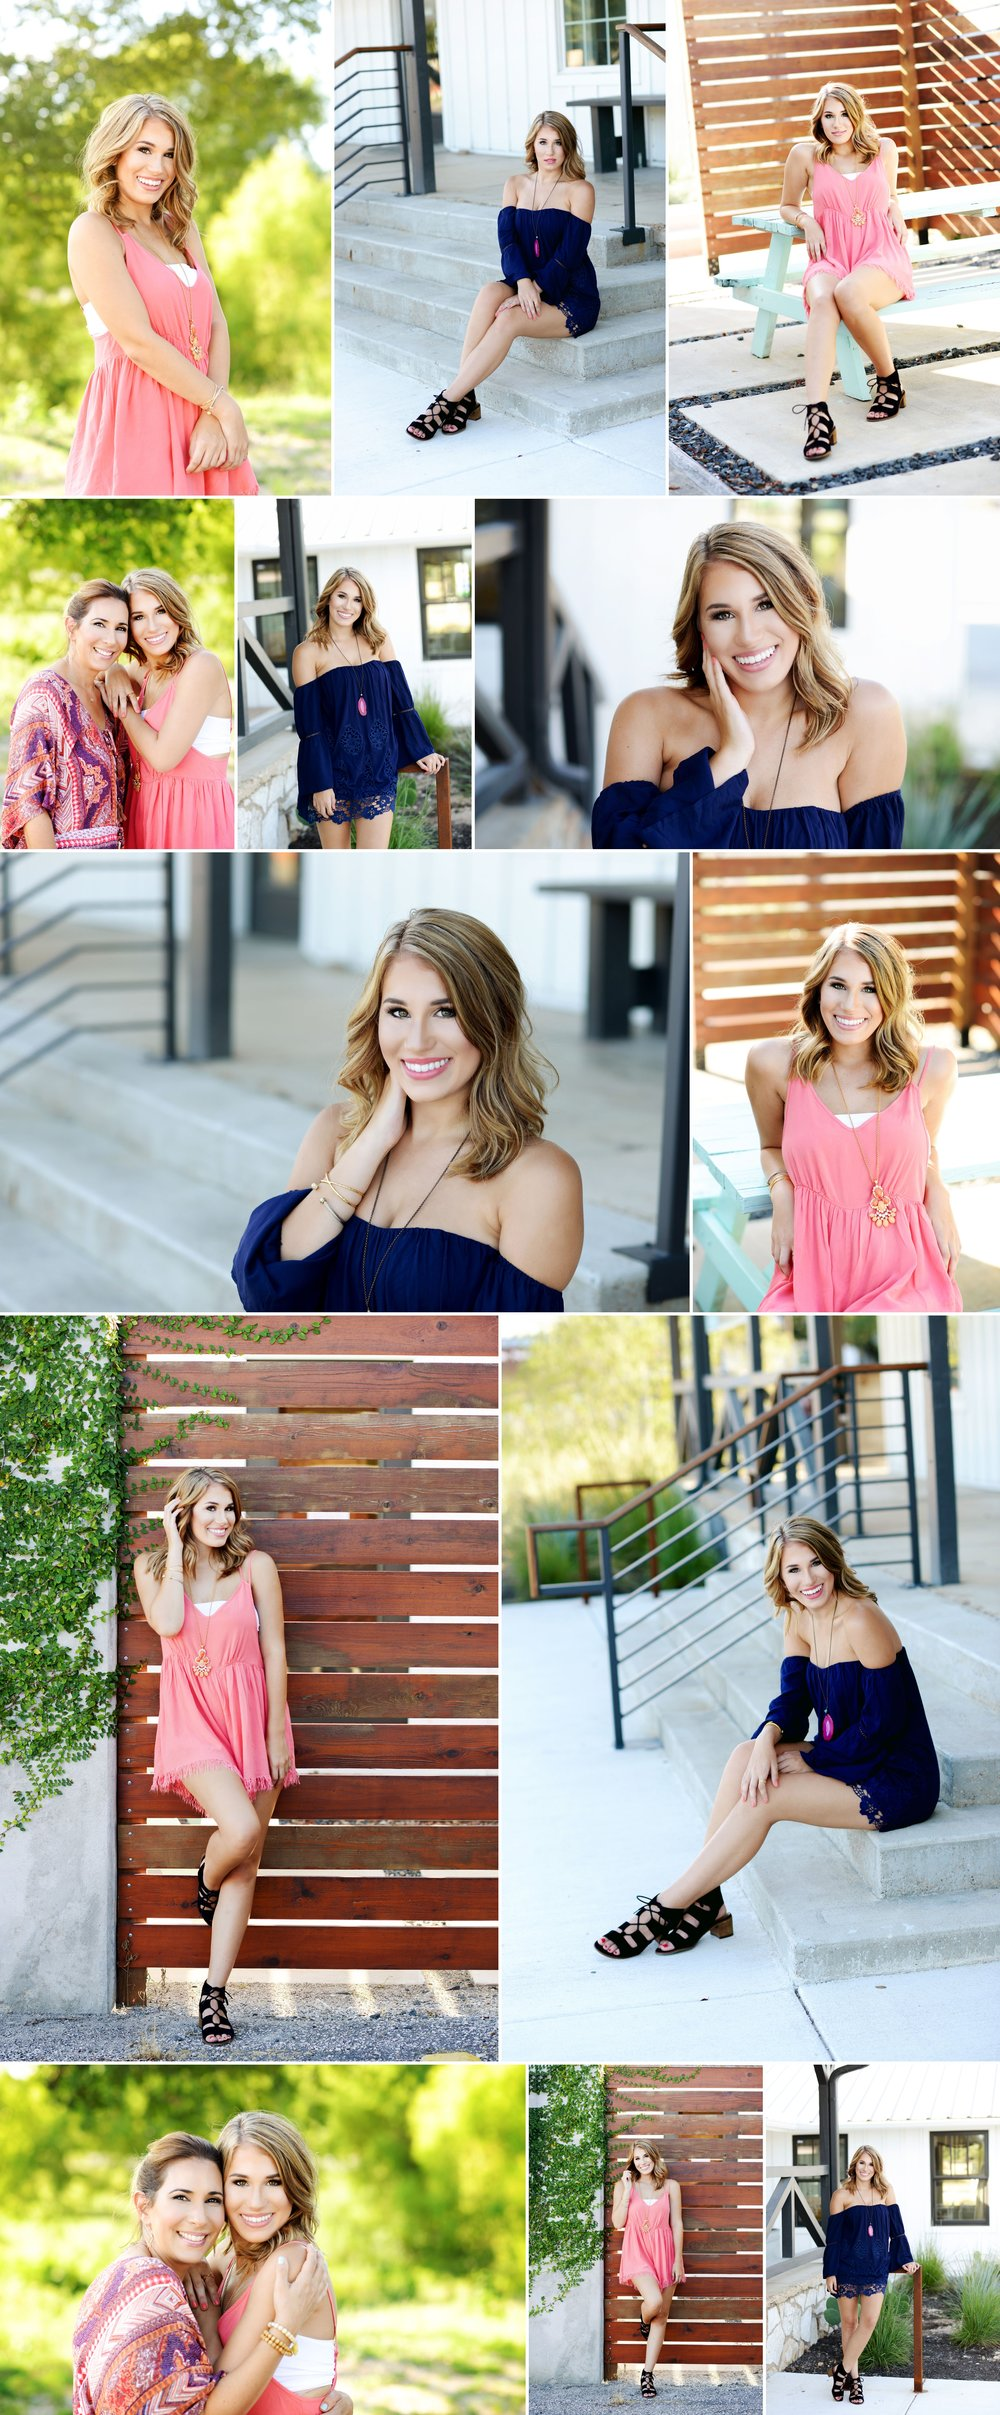 Austin Senior Portrait Photography